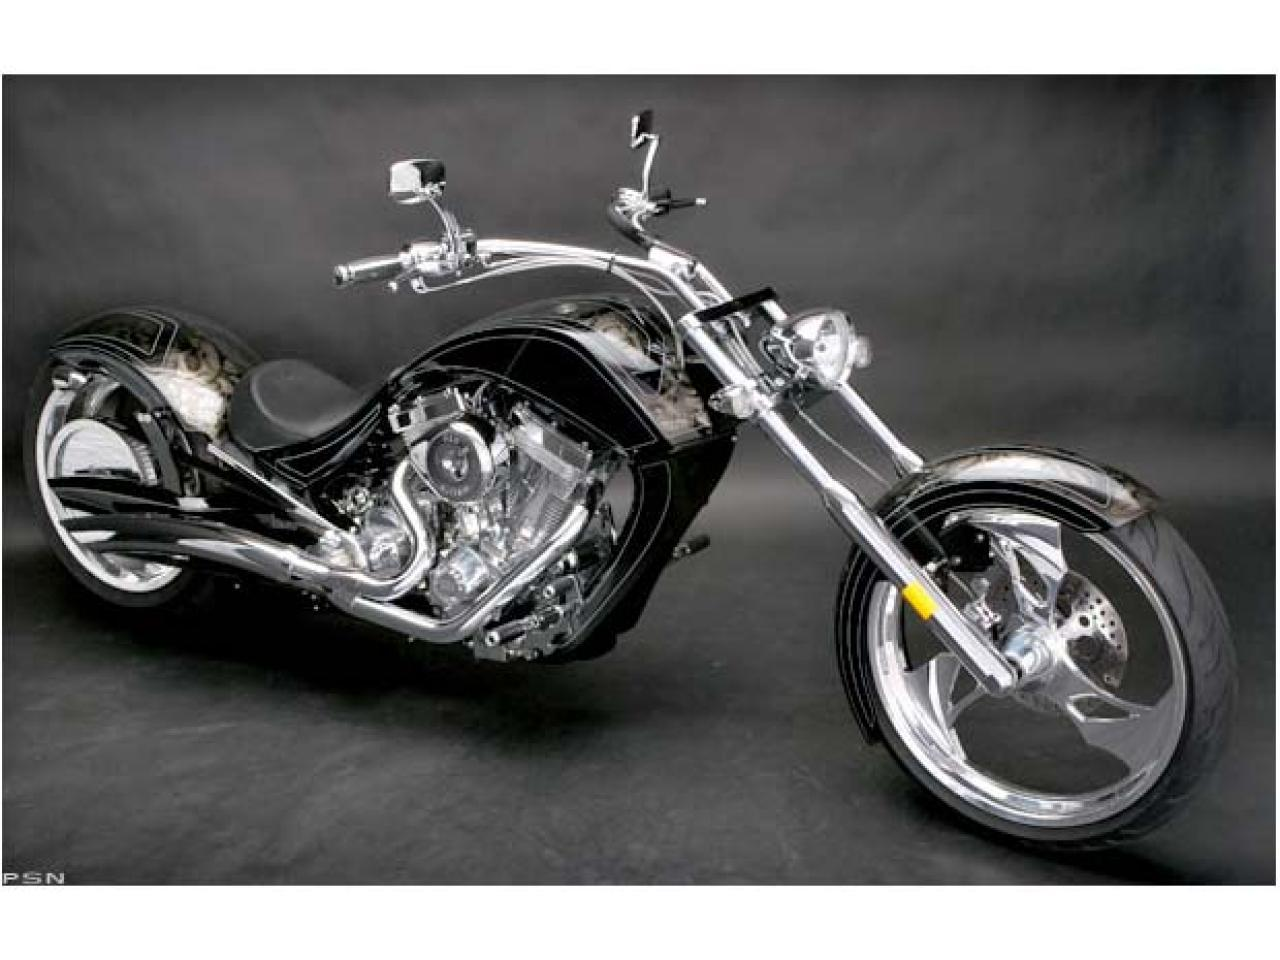 Big Bear Choppers Sled ProStreet 114 X-Wedge 2009 images #63895